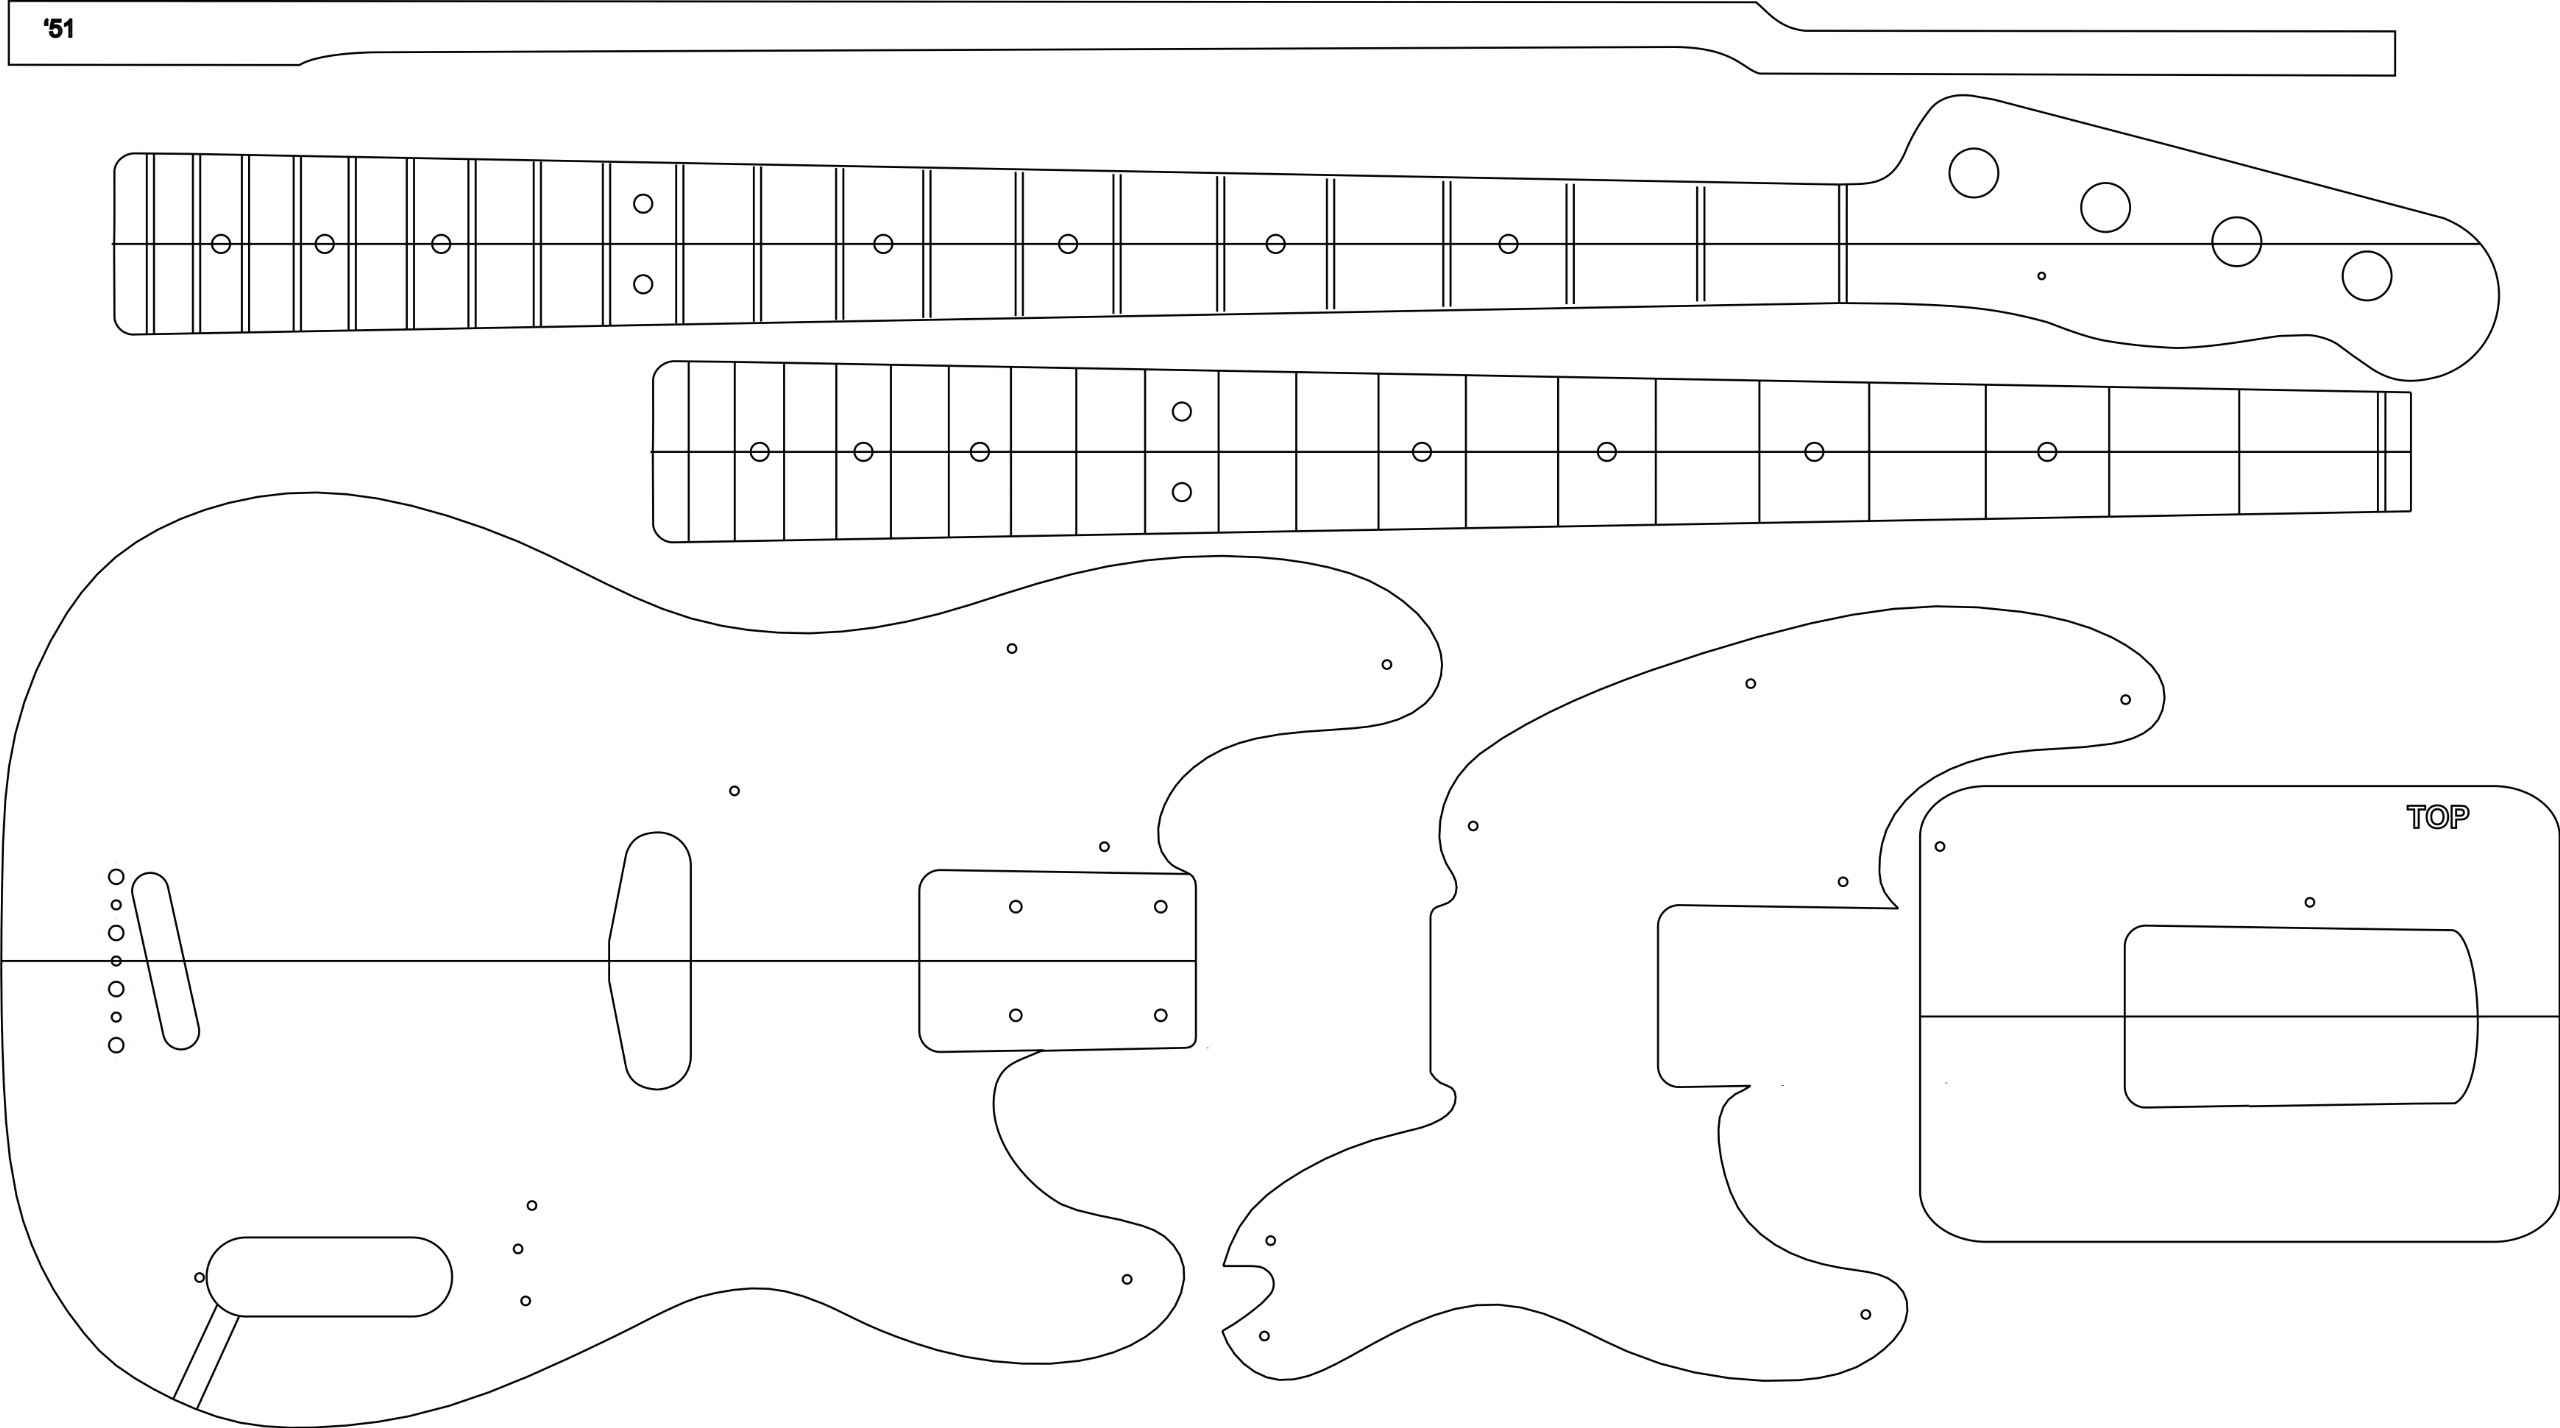 Electric Guitar Routing Template - '51 BASS